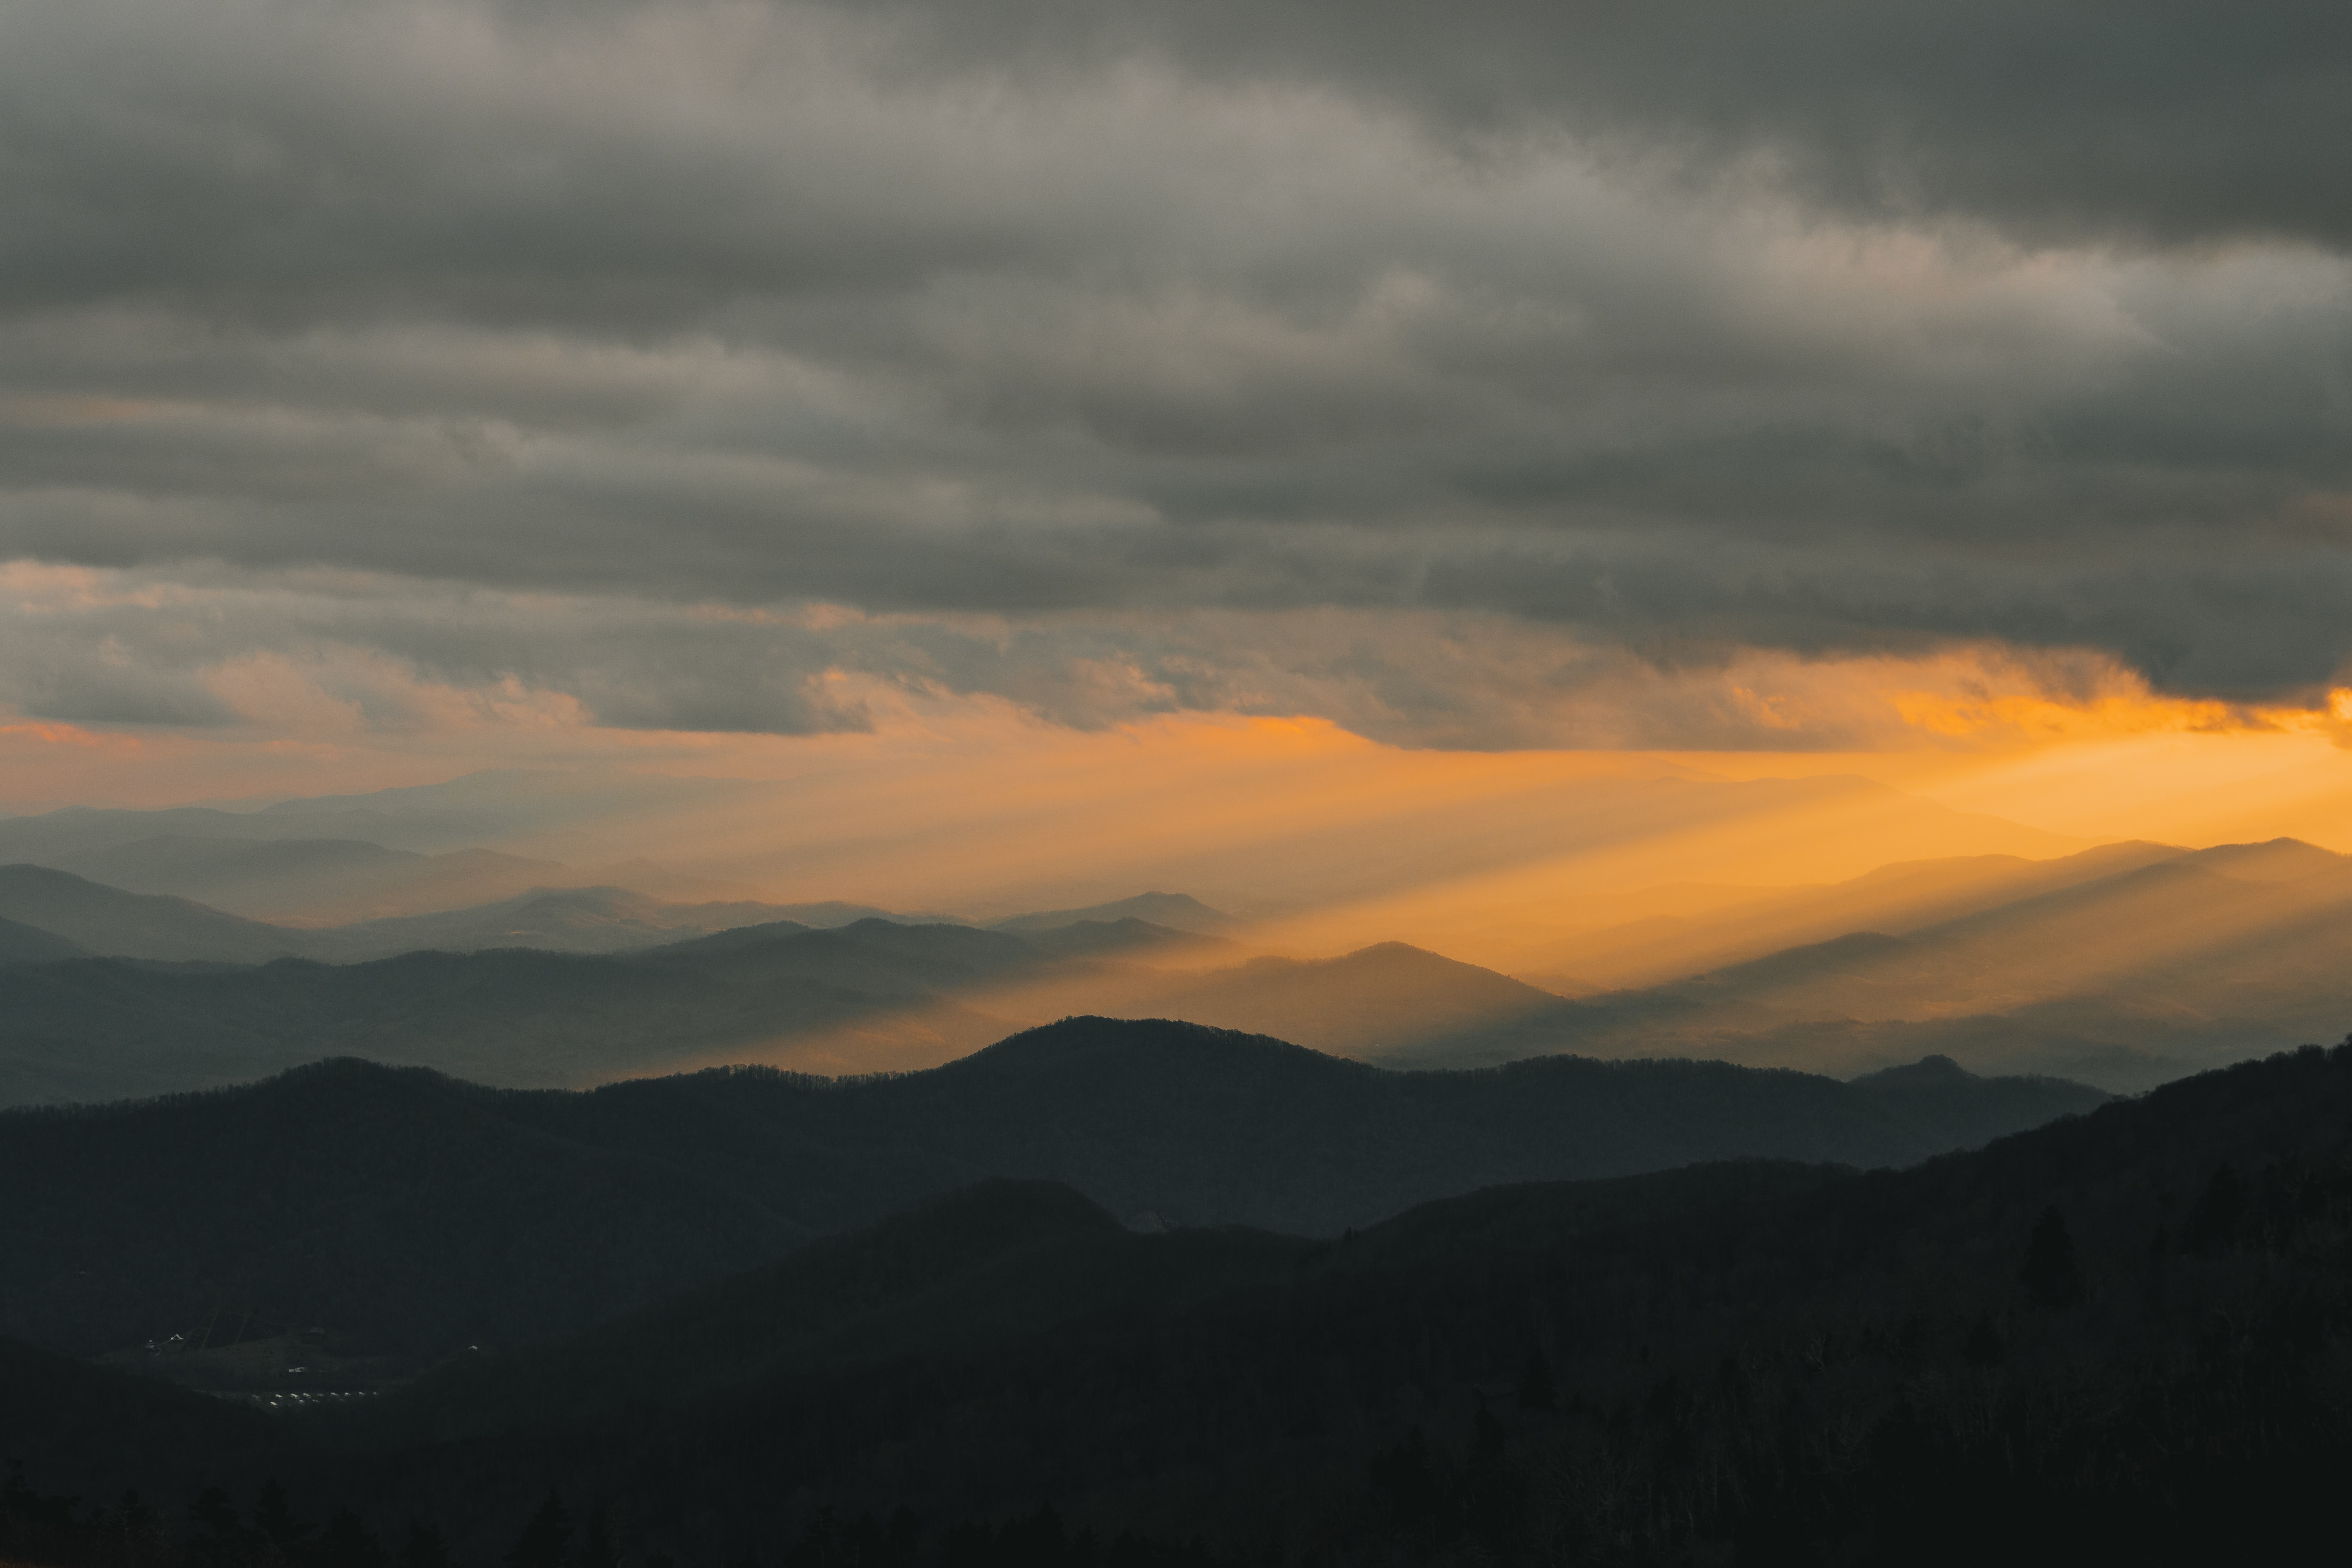 crepuscular rays shining over mountain ranges